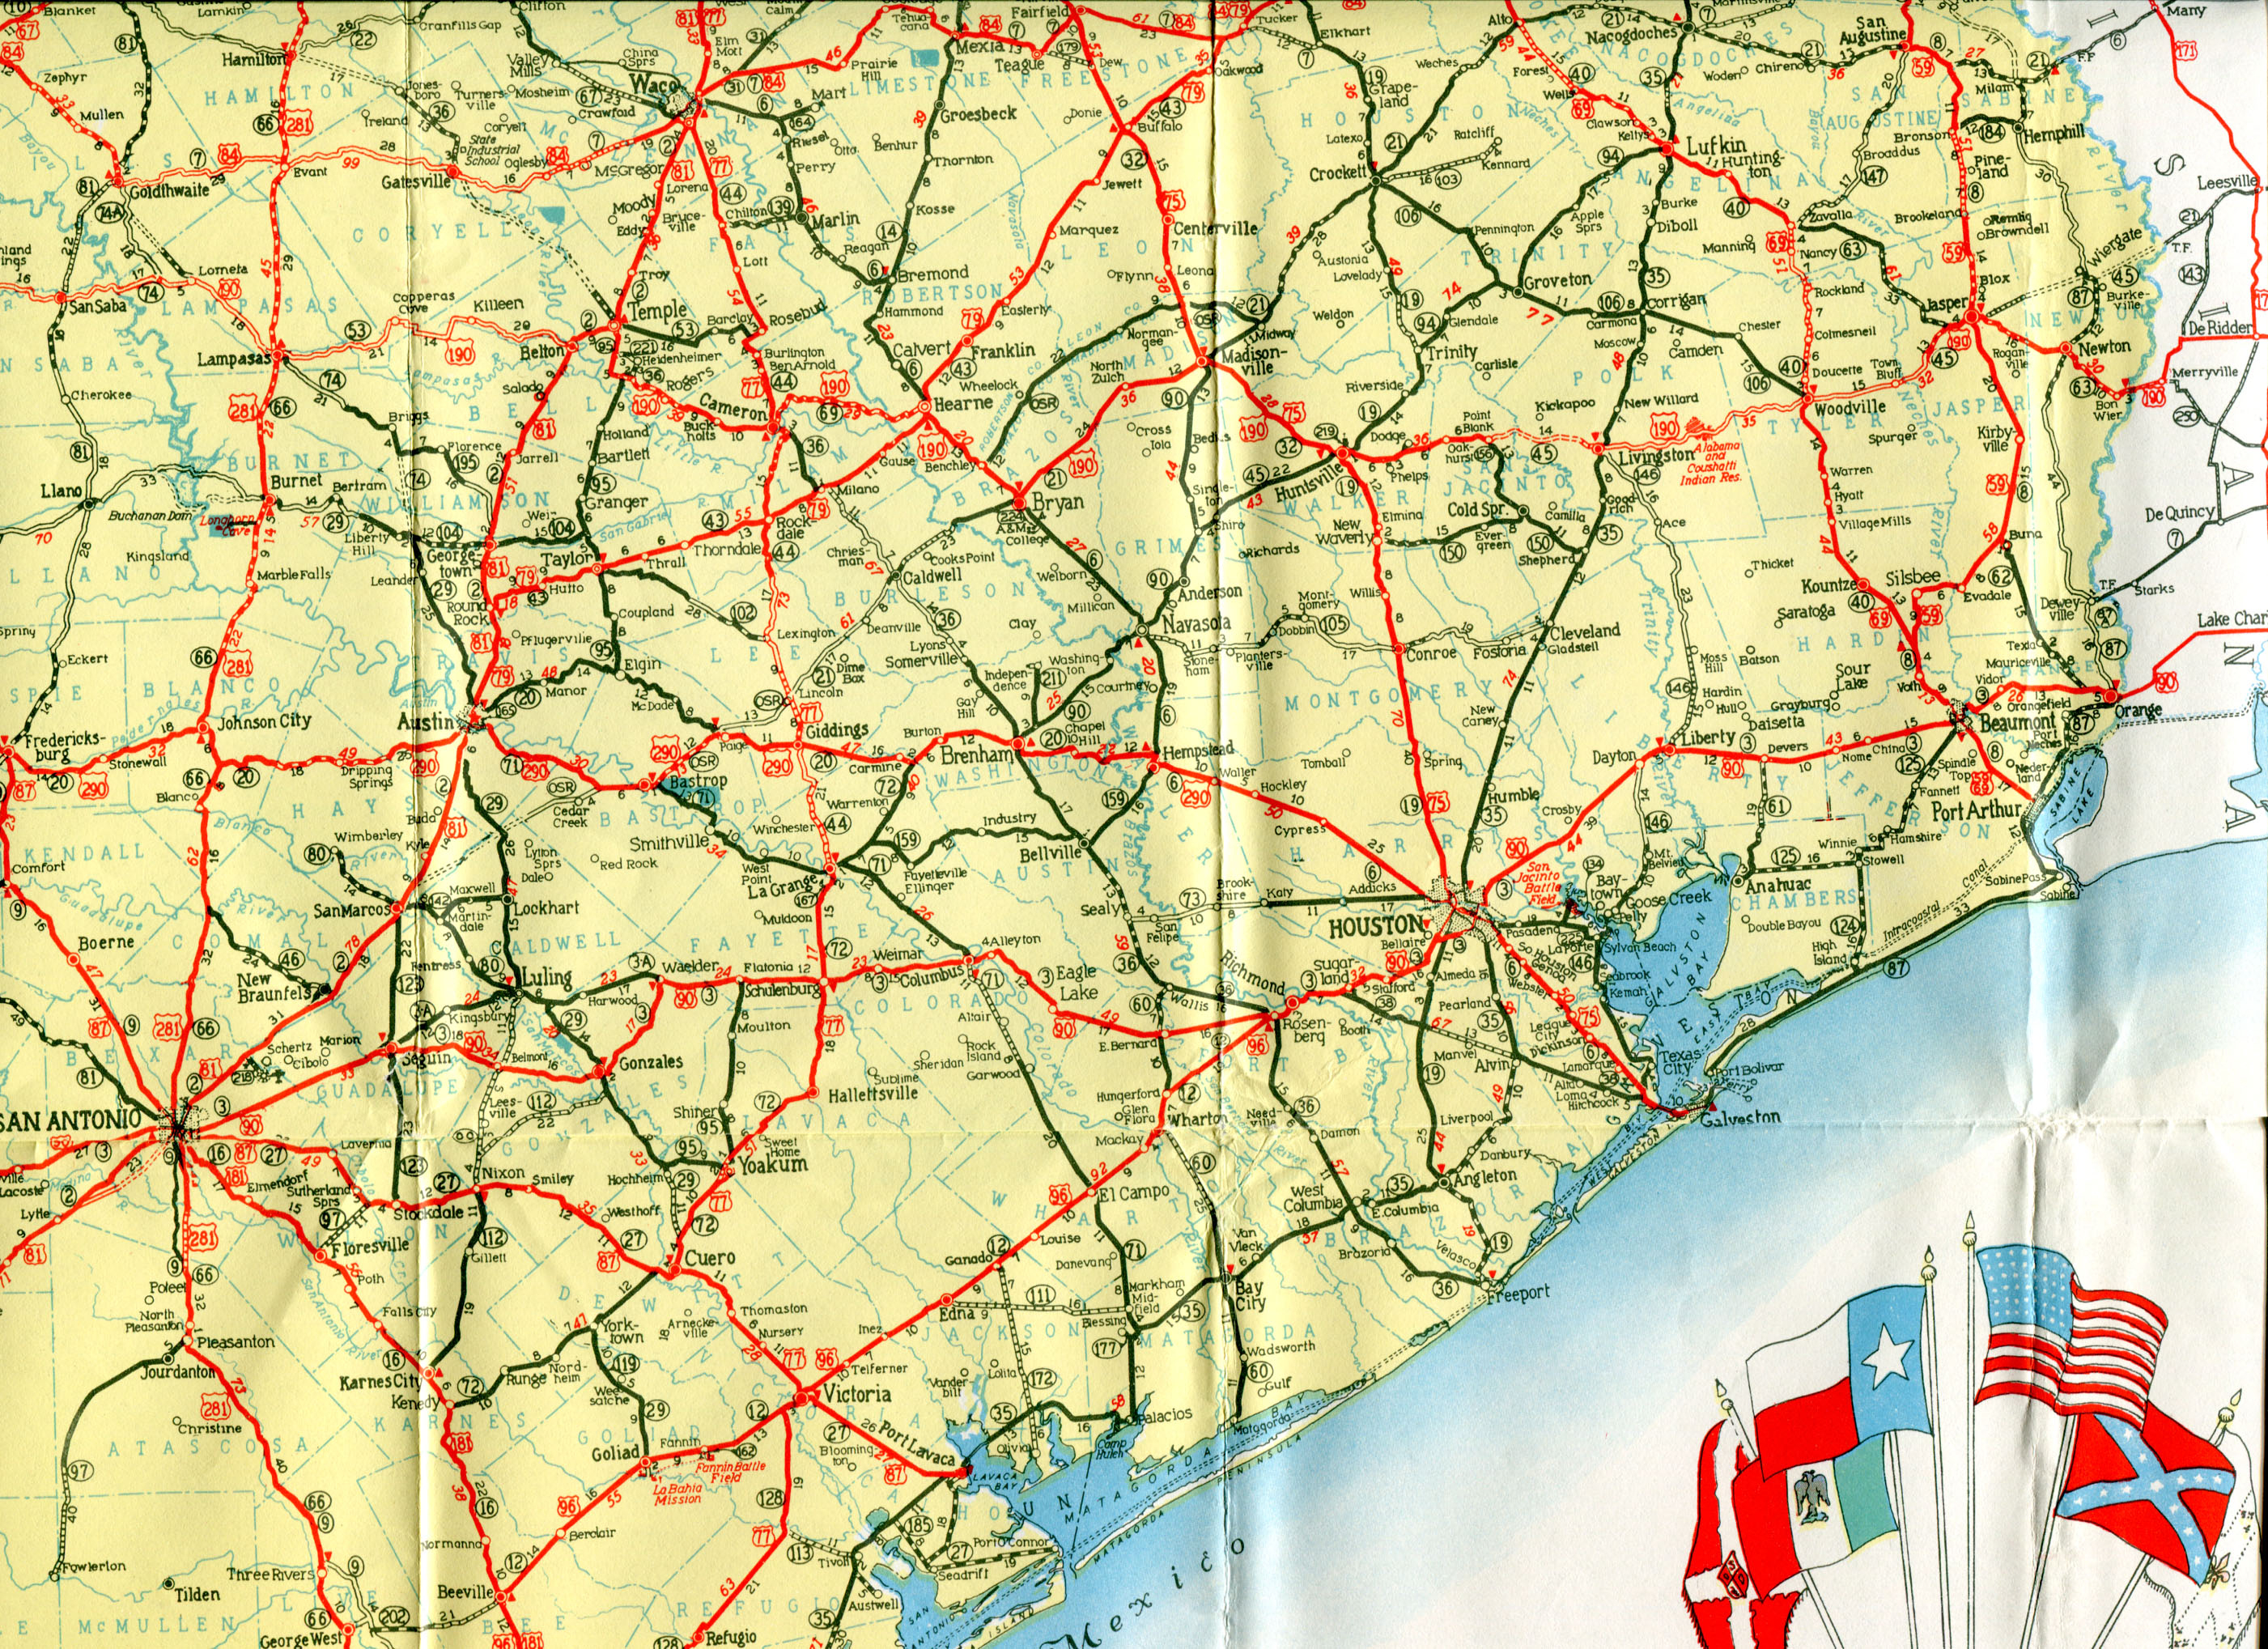 Old Highway Maps Of Texas - Official Texas Highway Map